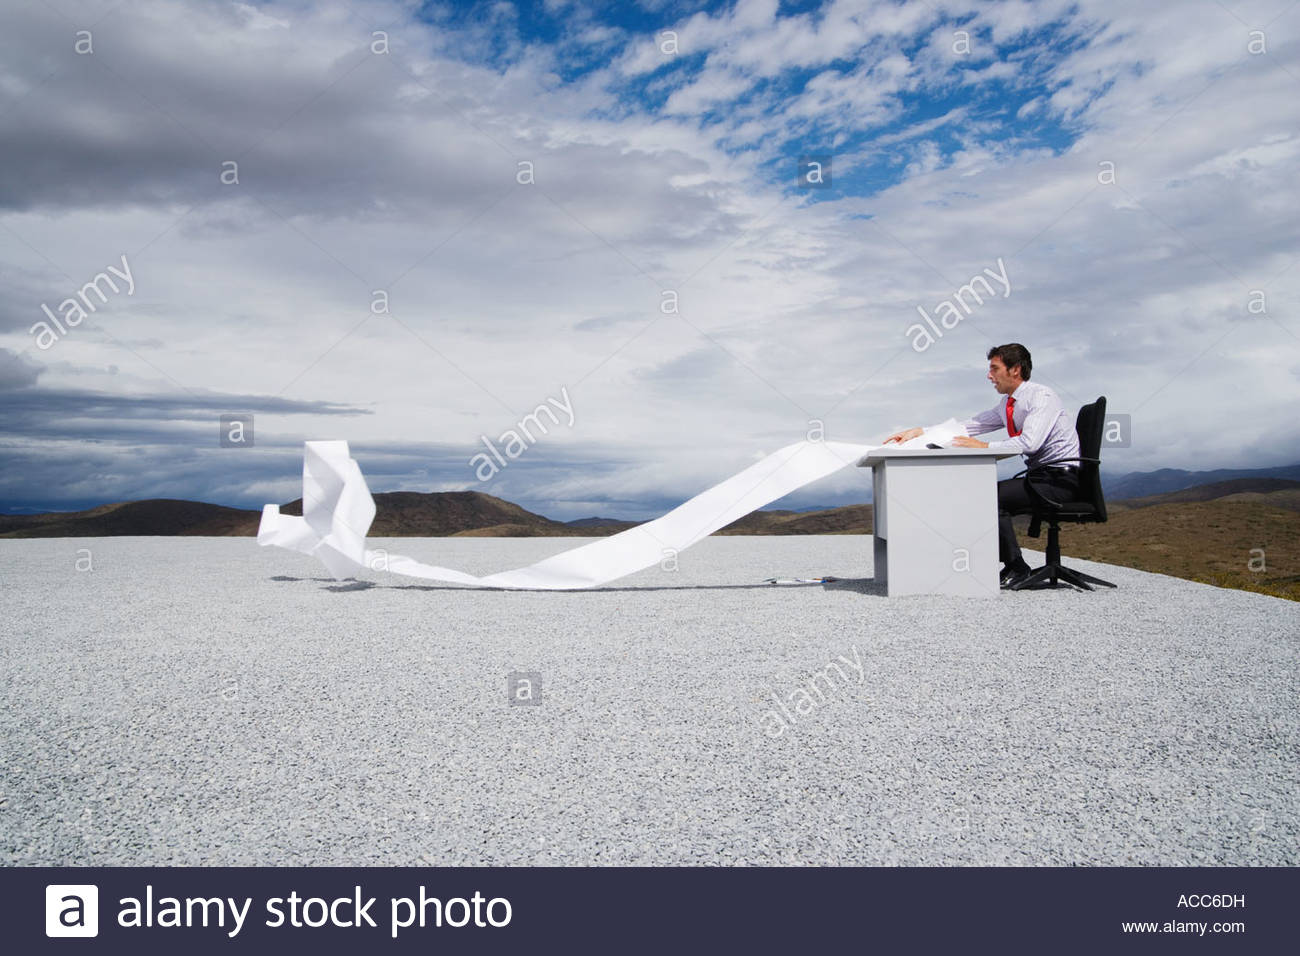 Man working outdoors with papers blowing in the wind - Stock Image